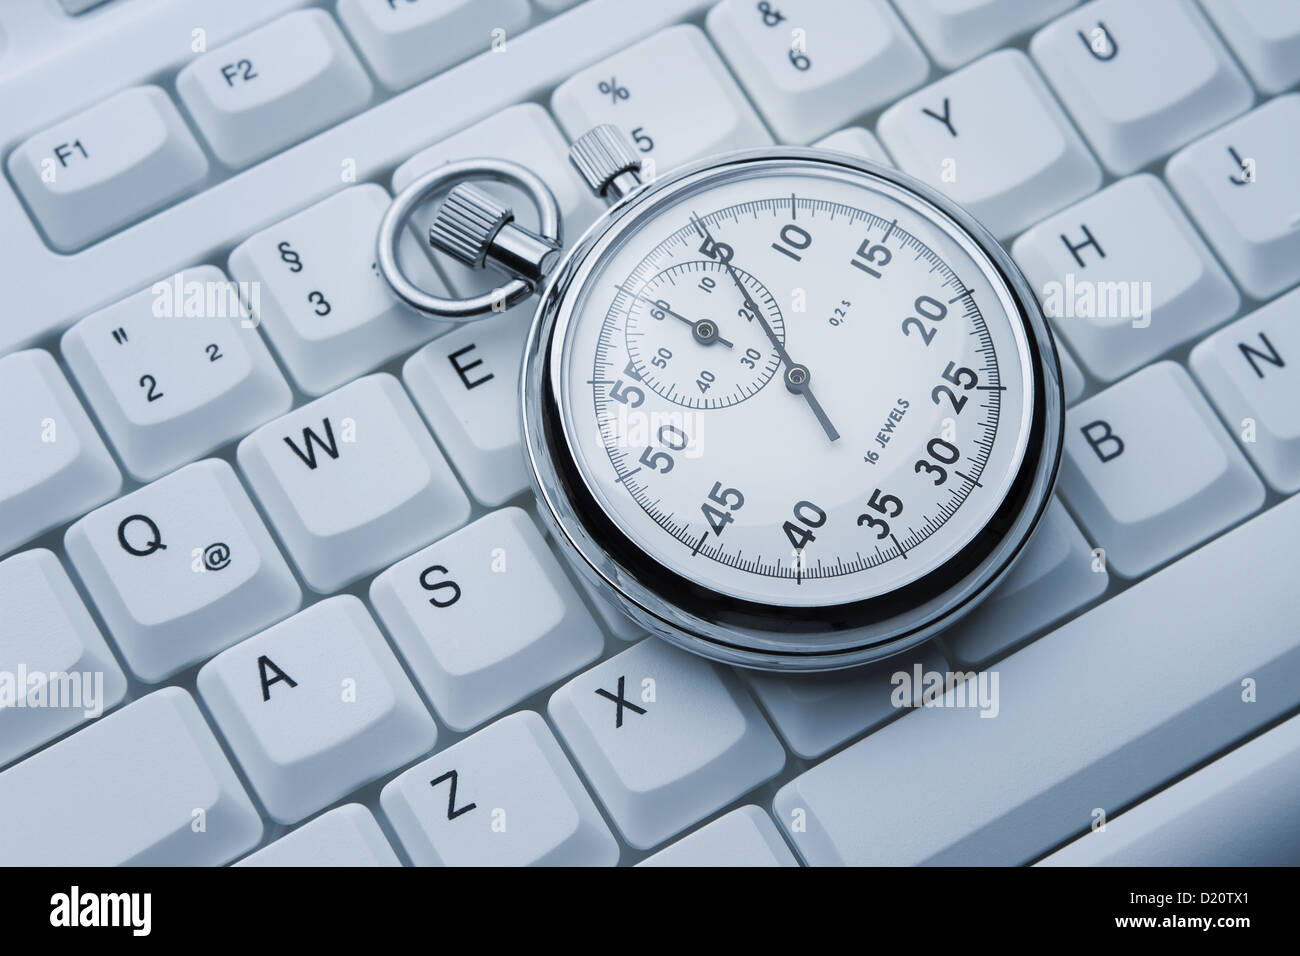 Close up of silver stopwatch lying on the keyboard - Stock Image